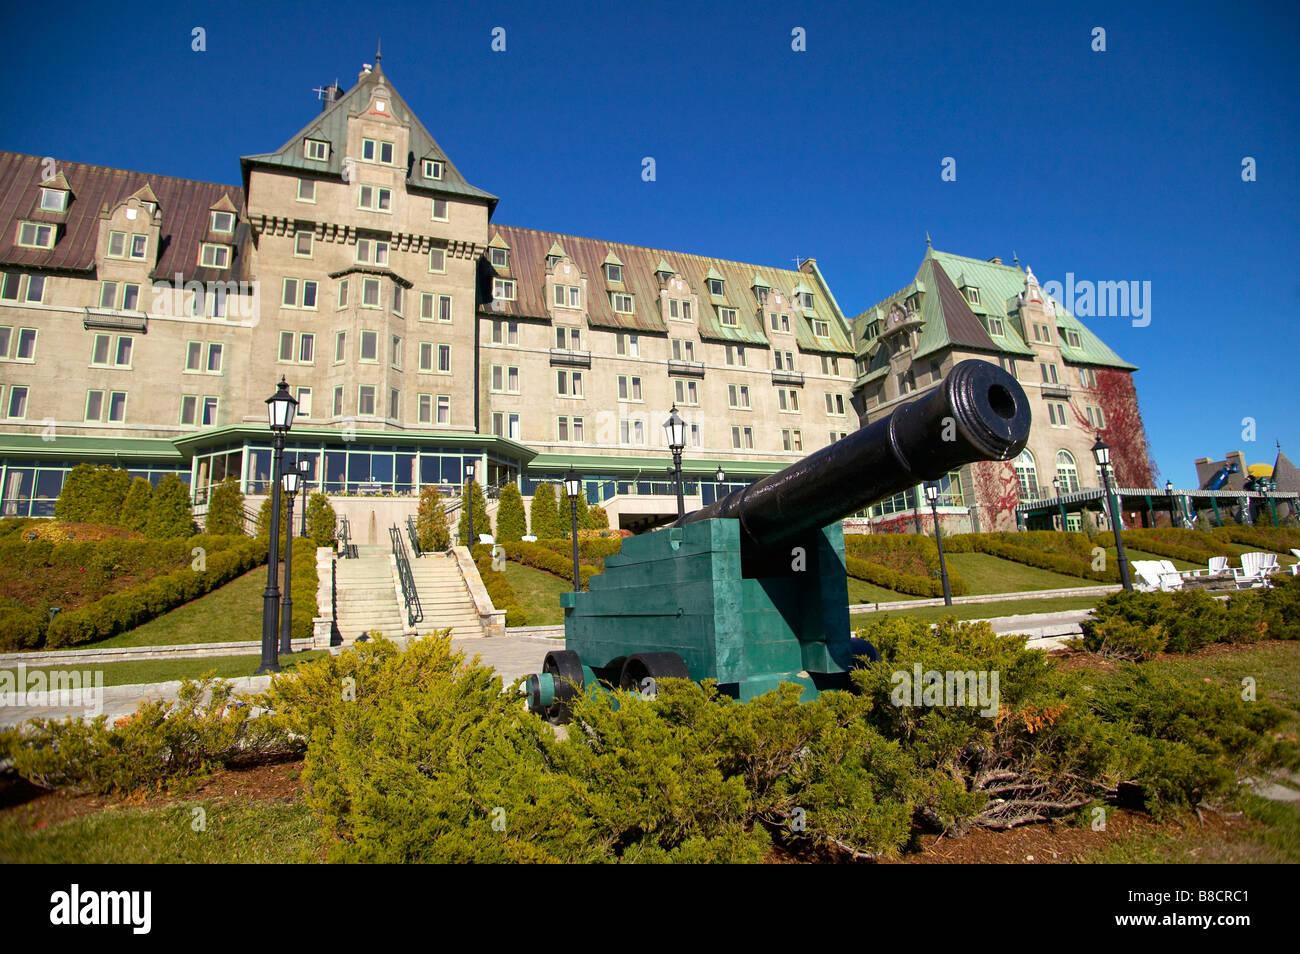 Le Manoir Richelieu Hotel  La Malbaie  Quebec Stock Photo